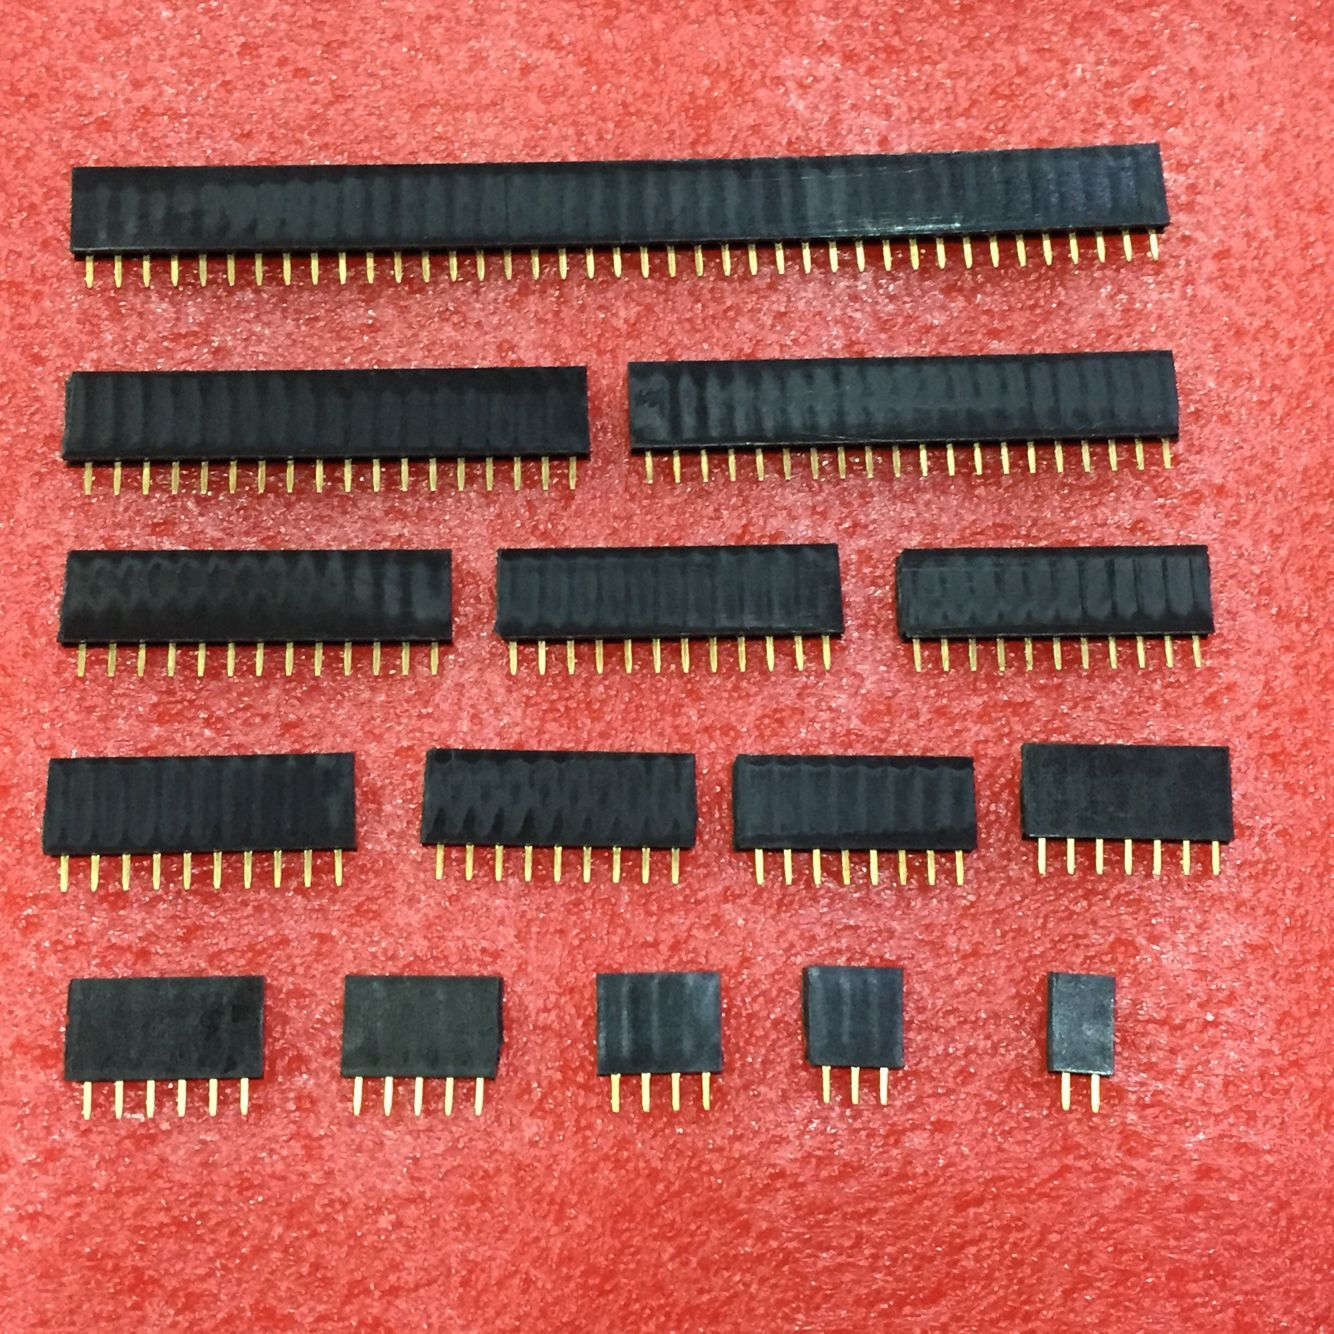 single-row-female-254mm-pitch-pcb-female-pin-header-connector-straight-single-row-2-3-4-5-6-7-8-9-10-11-12-13-14-15-16-20-40pin